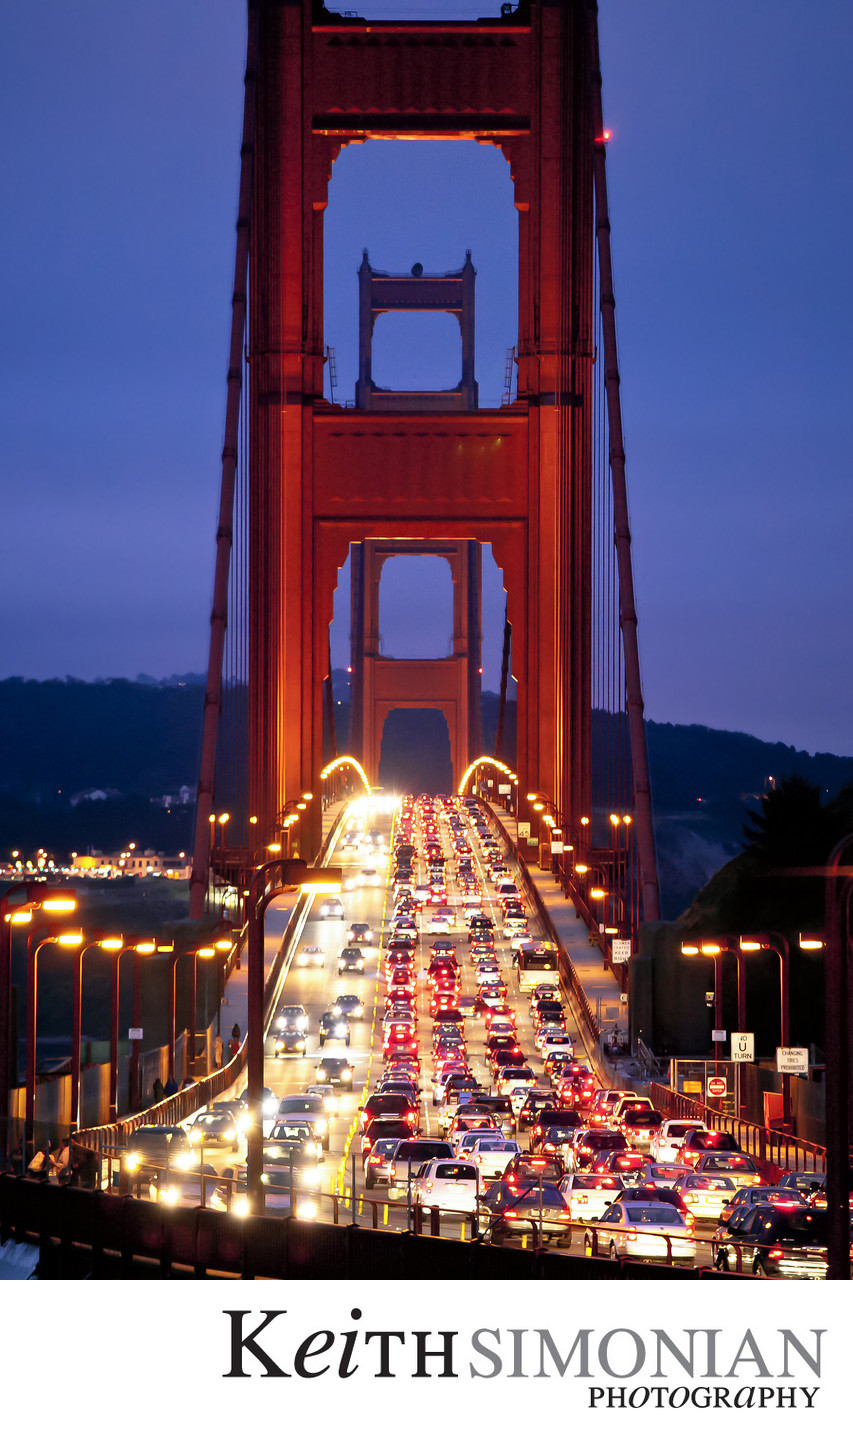 Golden Gate Bridge at twilight with rush hour traffic